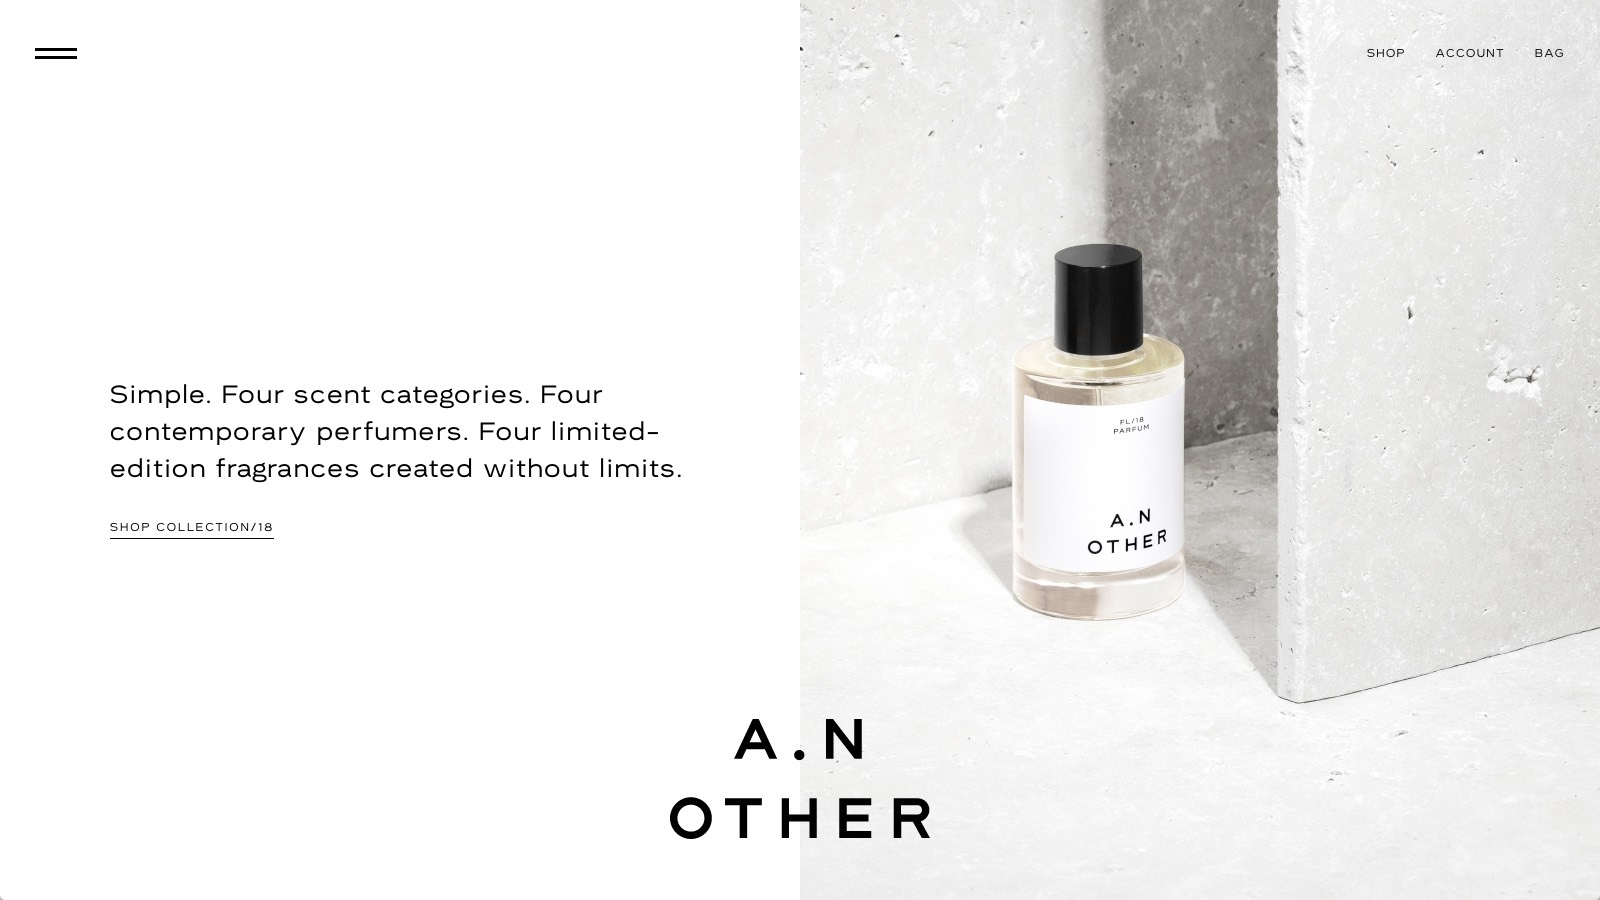 A.N. Other